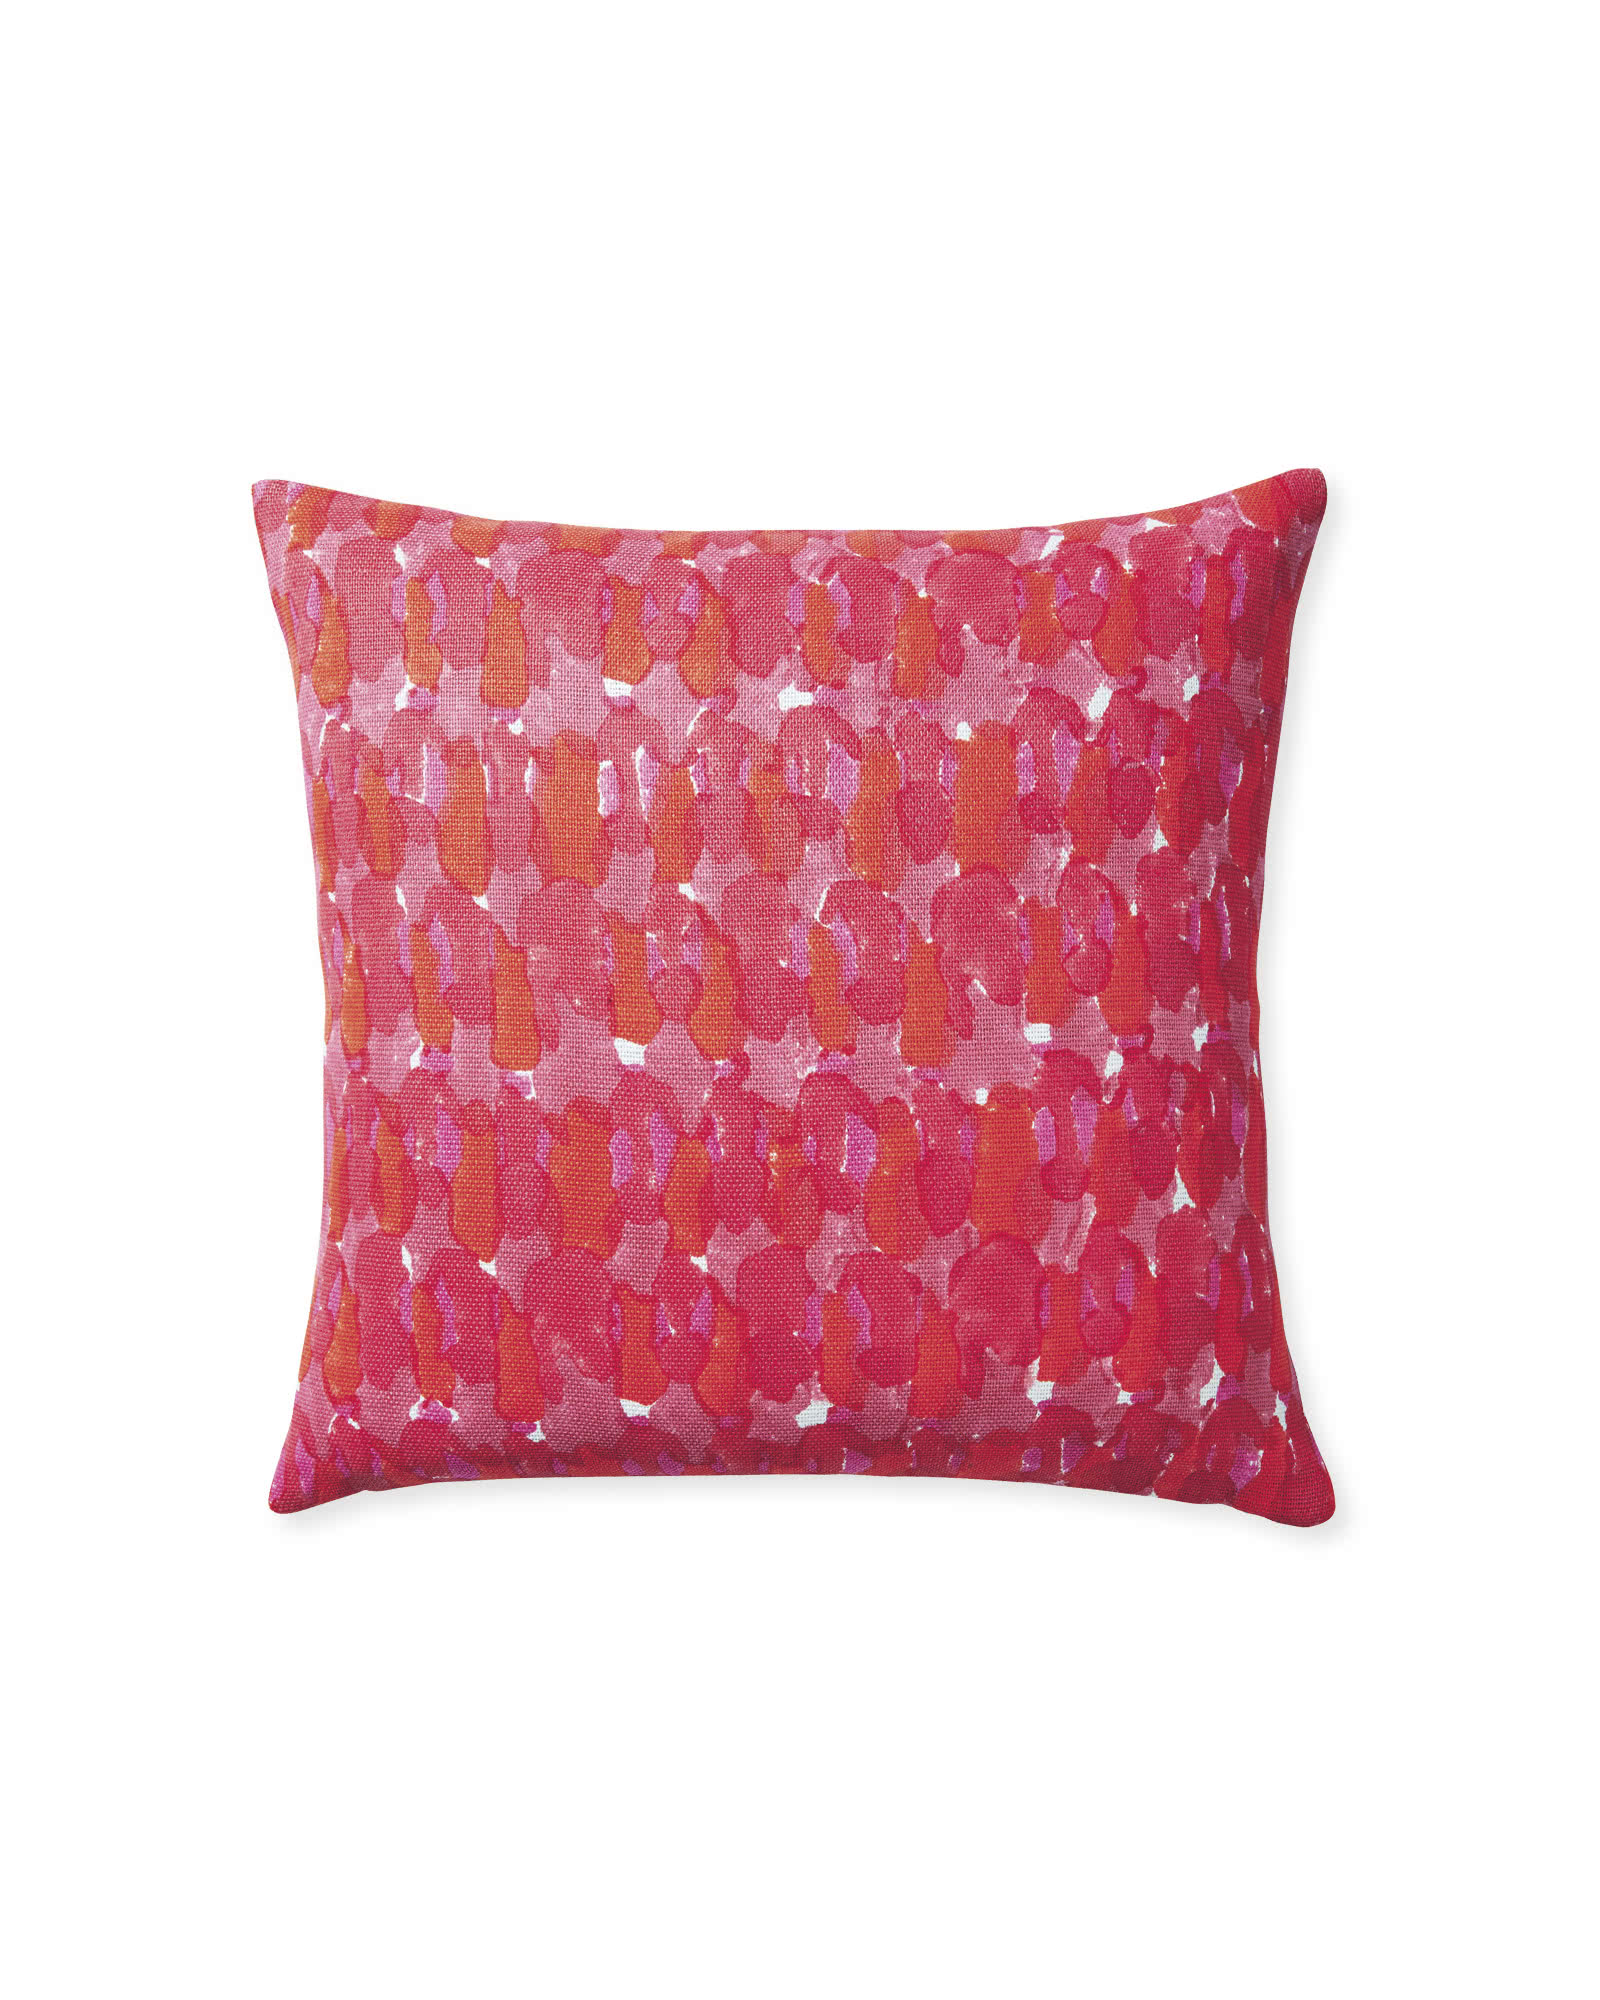 Capri Pillow Cover, Fuchsia